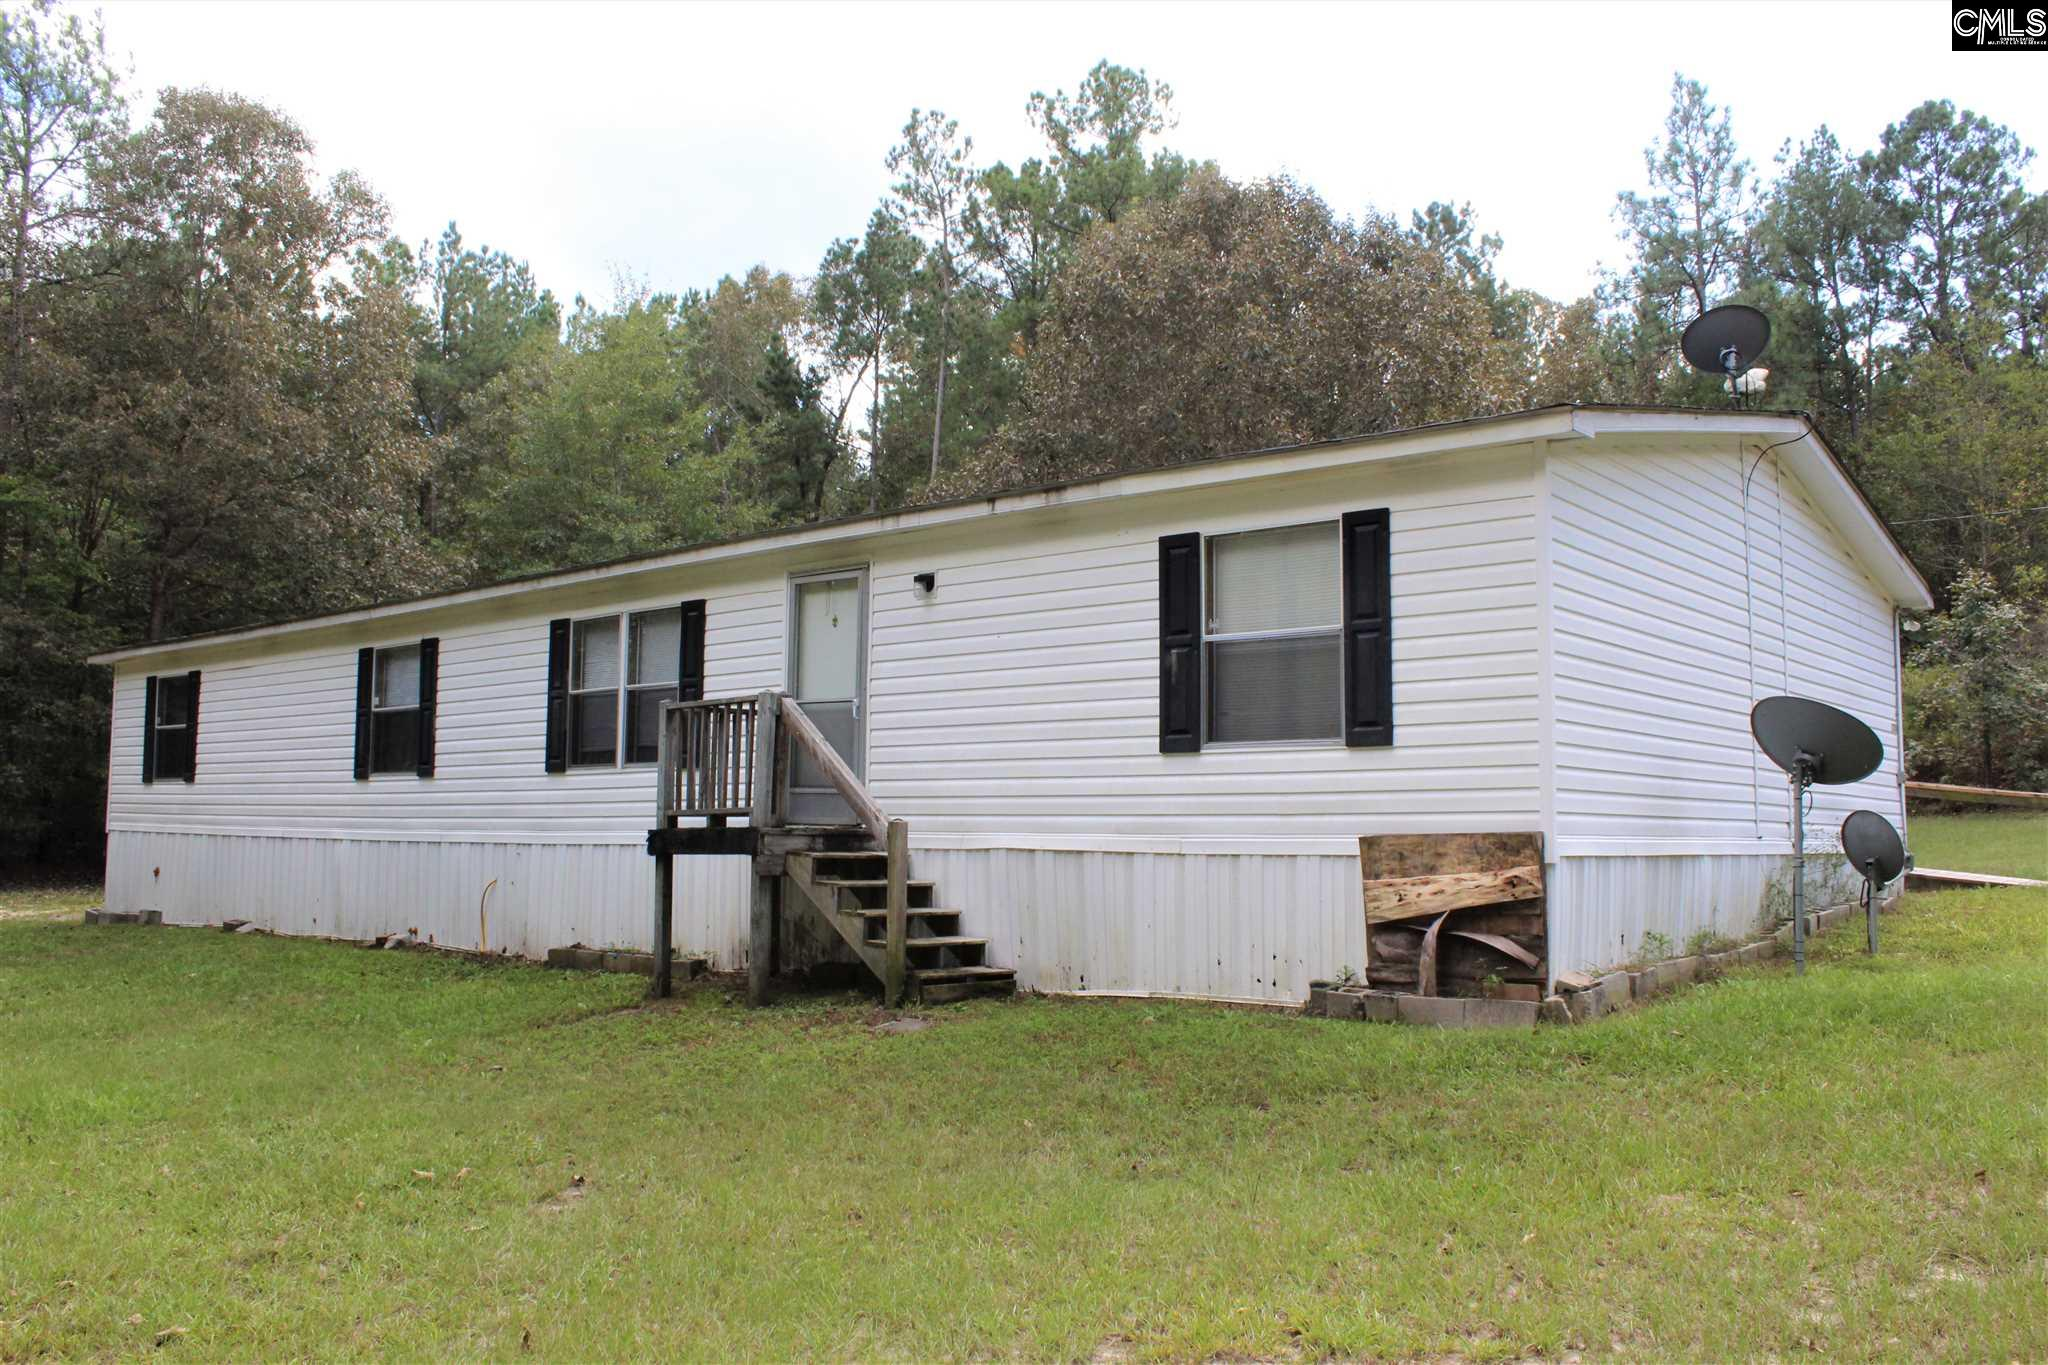 Mobile Home Sales In Lugoff Sc - Urban Home Interior • on farm equipment in sc, marinas in sc, modular homes in sc, grocery stores in sc, airports in sc, parks in sc, museums in sc, apartments in sc,